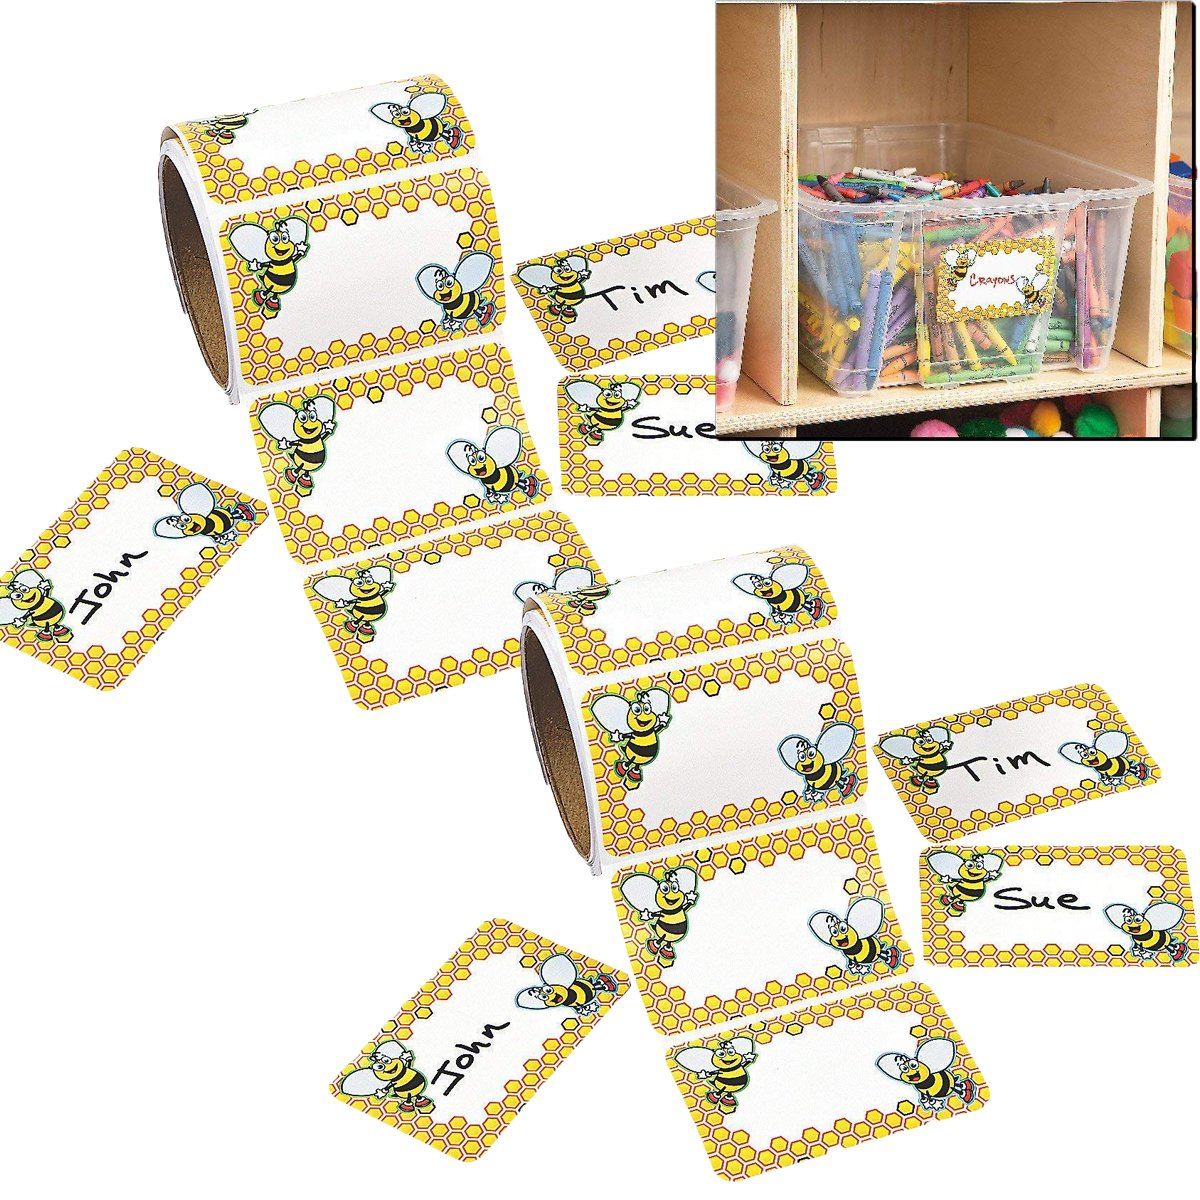 Stickers Fun Express 1 Piece Stickers Lt Blue Ribbon Roll Stickers Roll Stationery